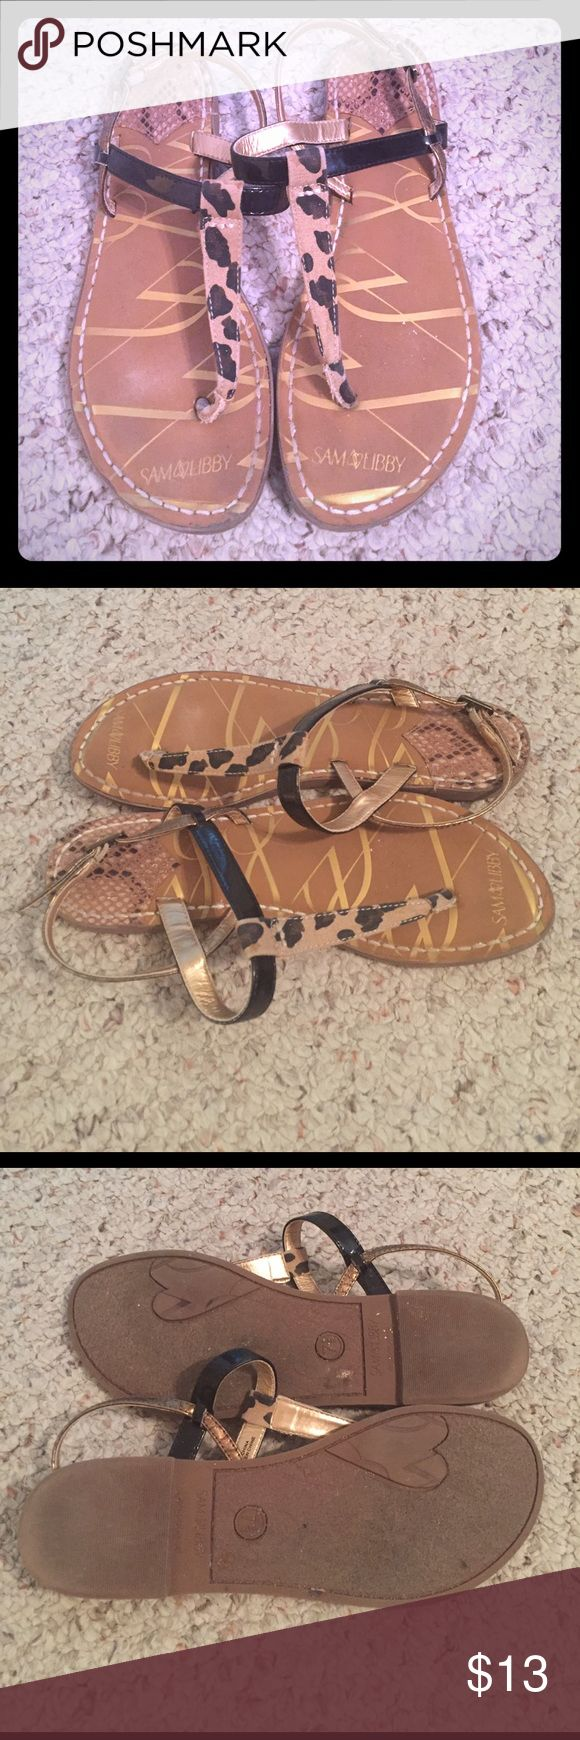 Cheetah Print Sandals Sam &a Libby Cheetah Print Sandals. Patent leather strap and gold/bronze strap. Snake print at the bed of the heels. Good condition. Size 7.5 Sam & Libby Shoes Sandals